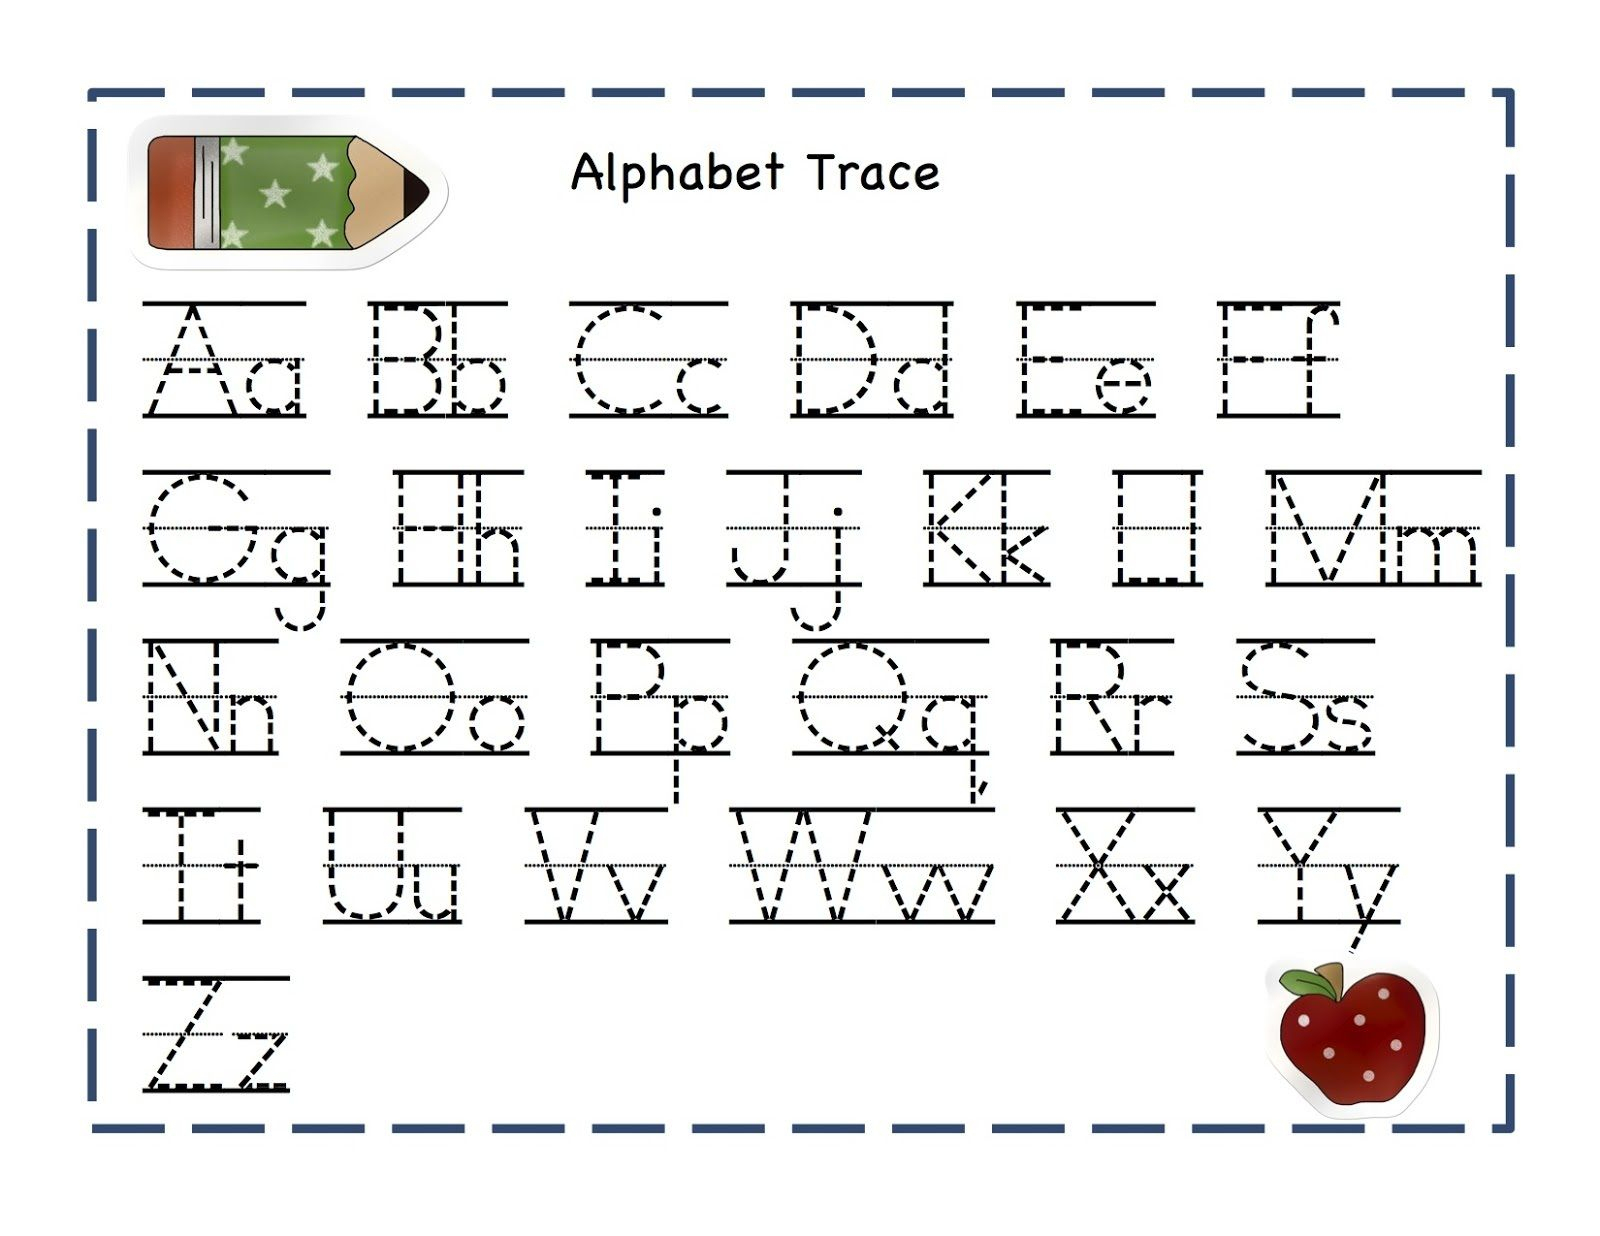 Alphabet Tracer Pages For Kids | Alphabet And Numbers Learning - Free Printable Preschool Name Tracer Pages